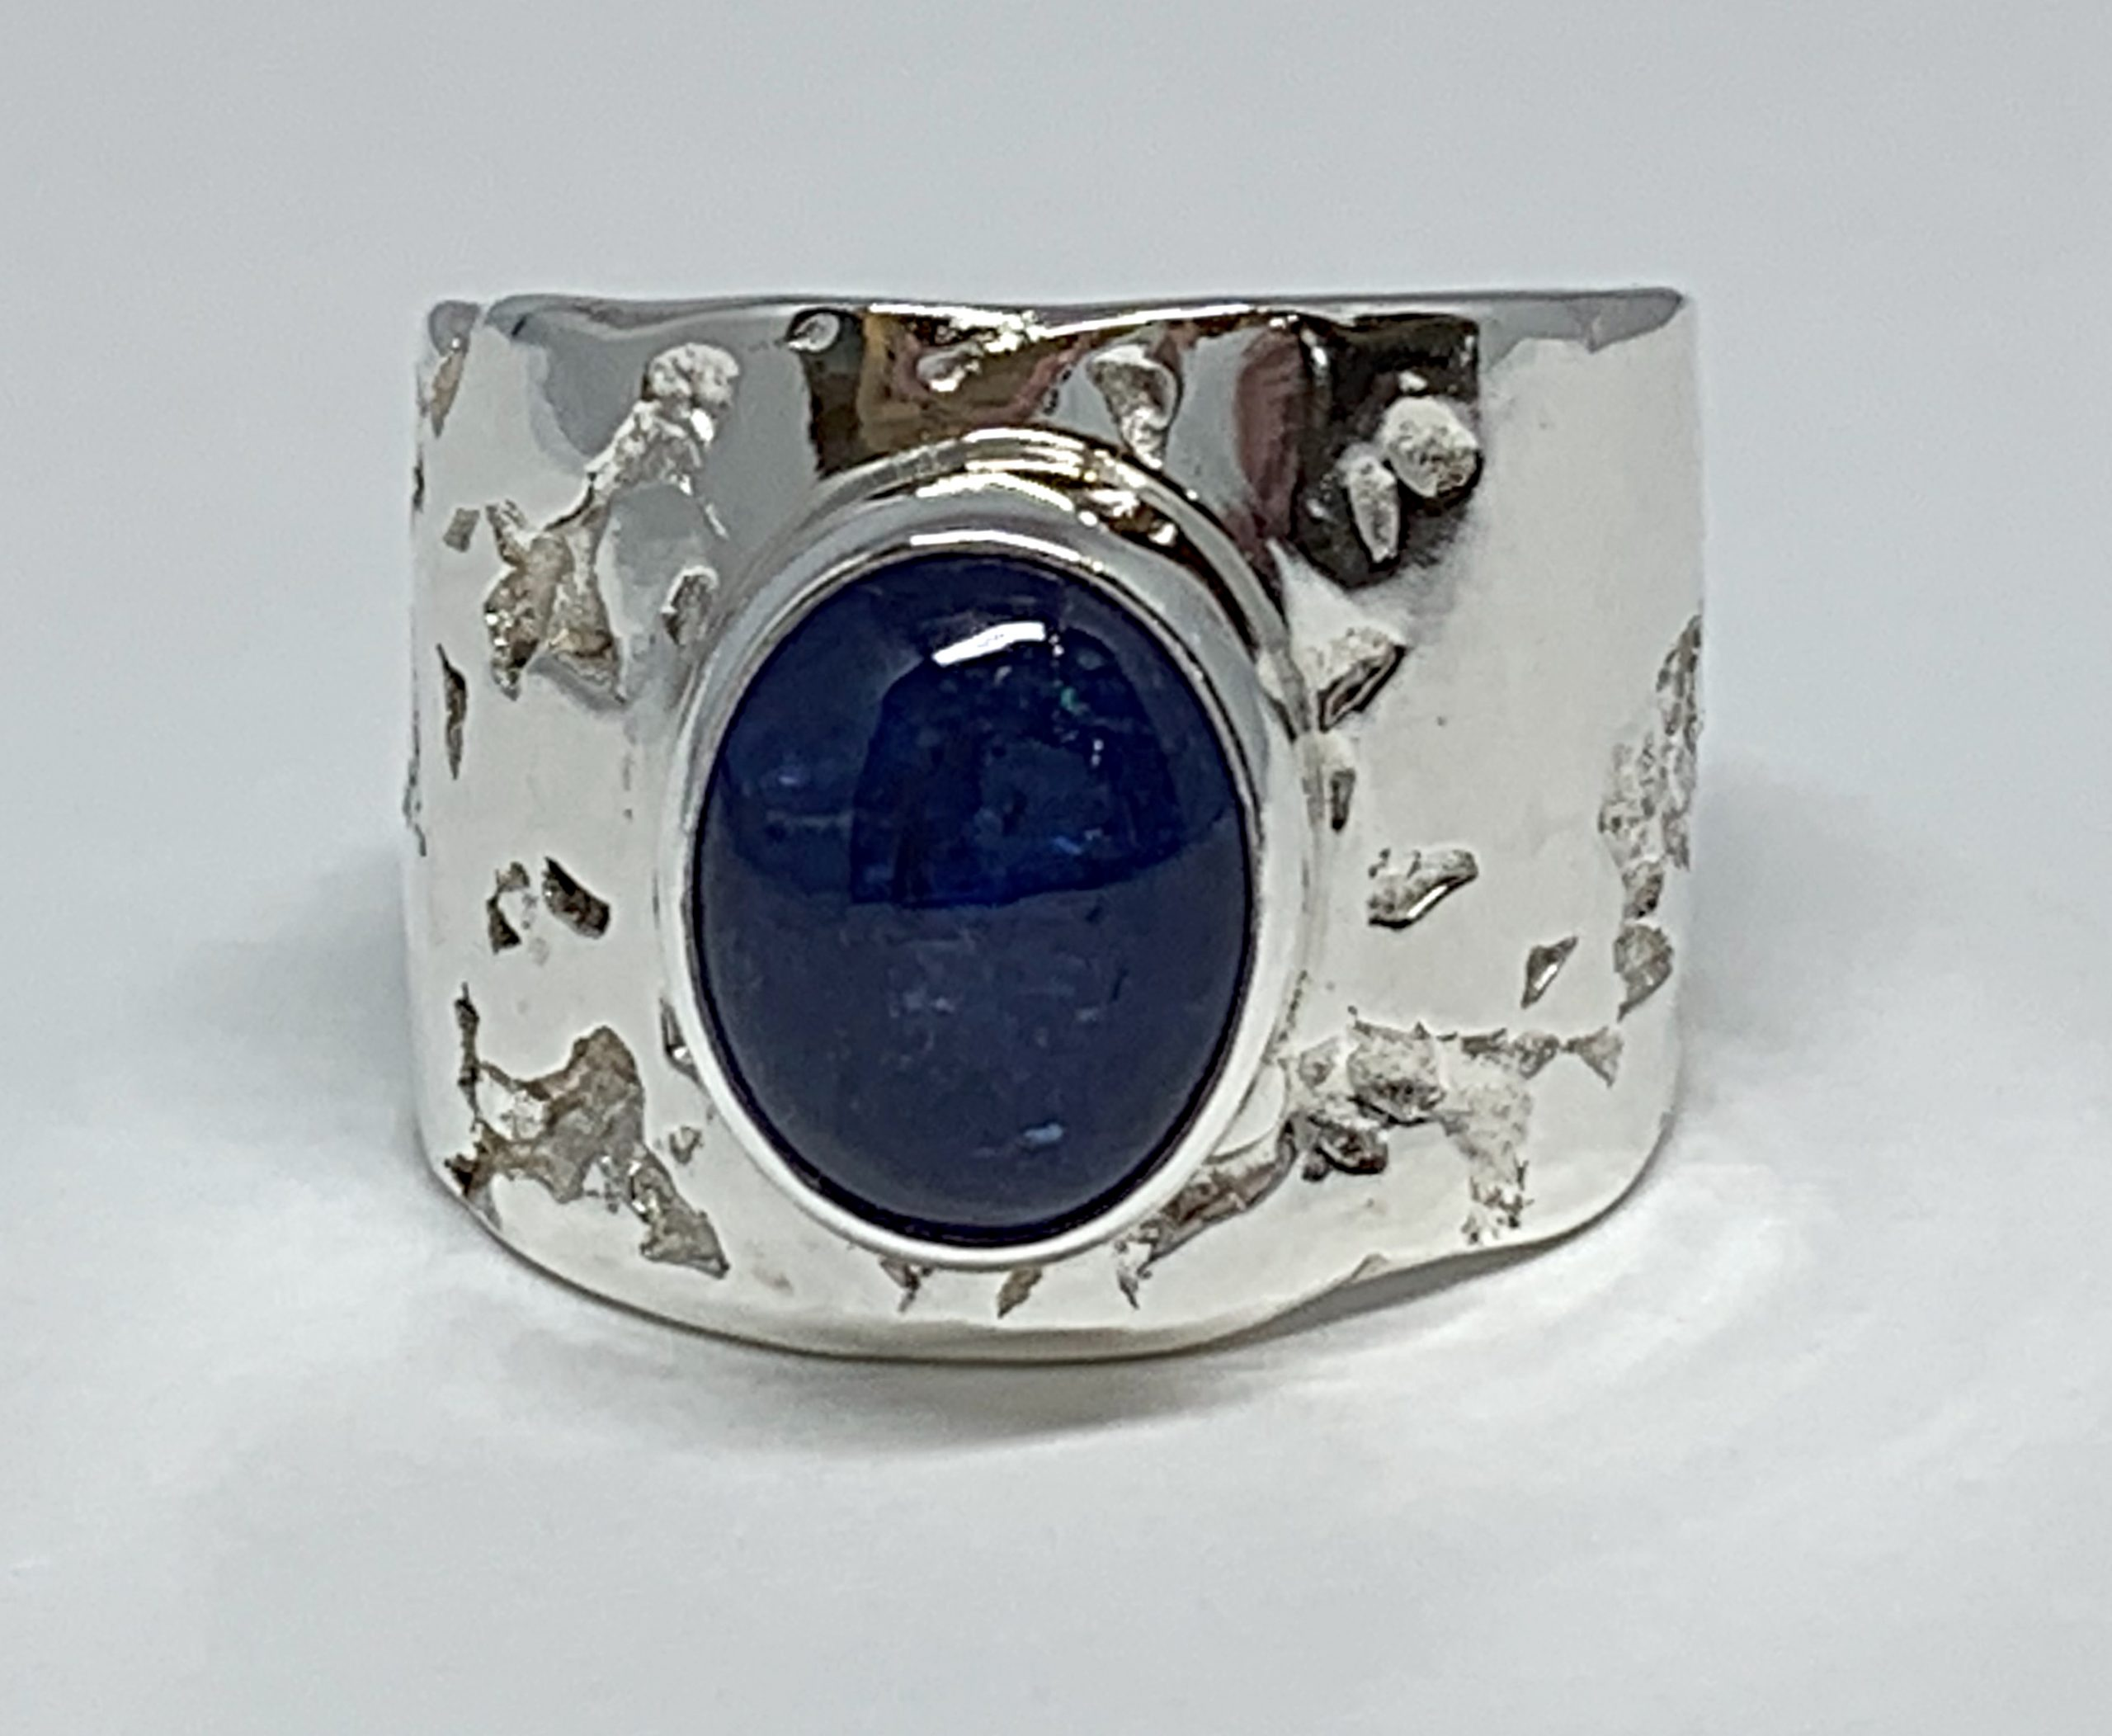 Sterling silver and tanzanite cabochon ring by A&R Jewellery   Effusion Art Gallery + Cast Glass Studio, Invermere BC